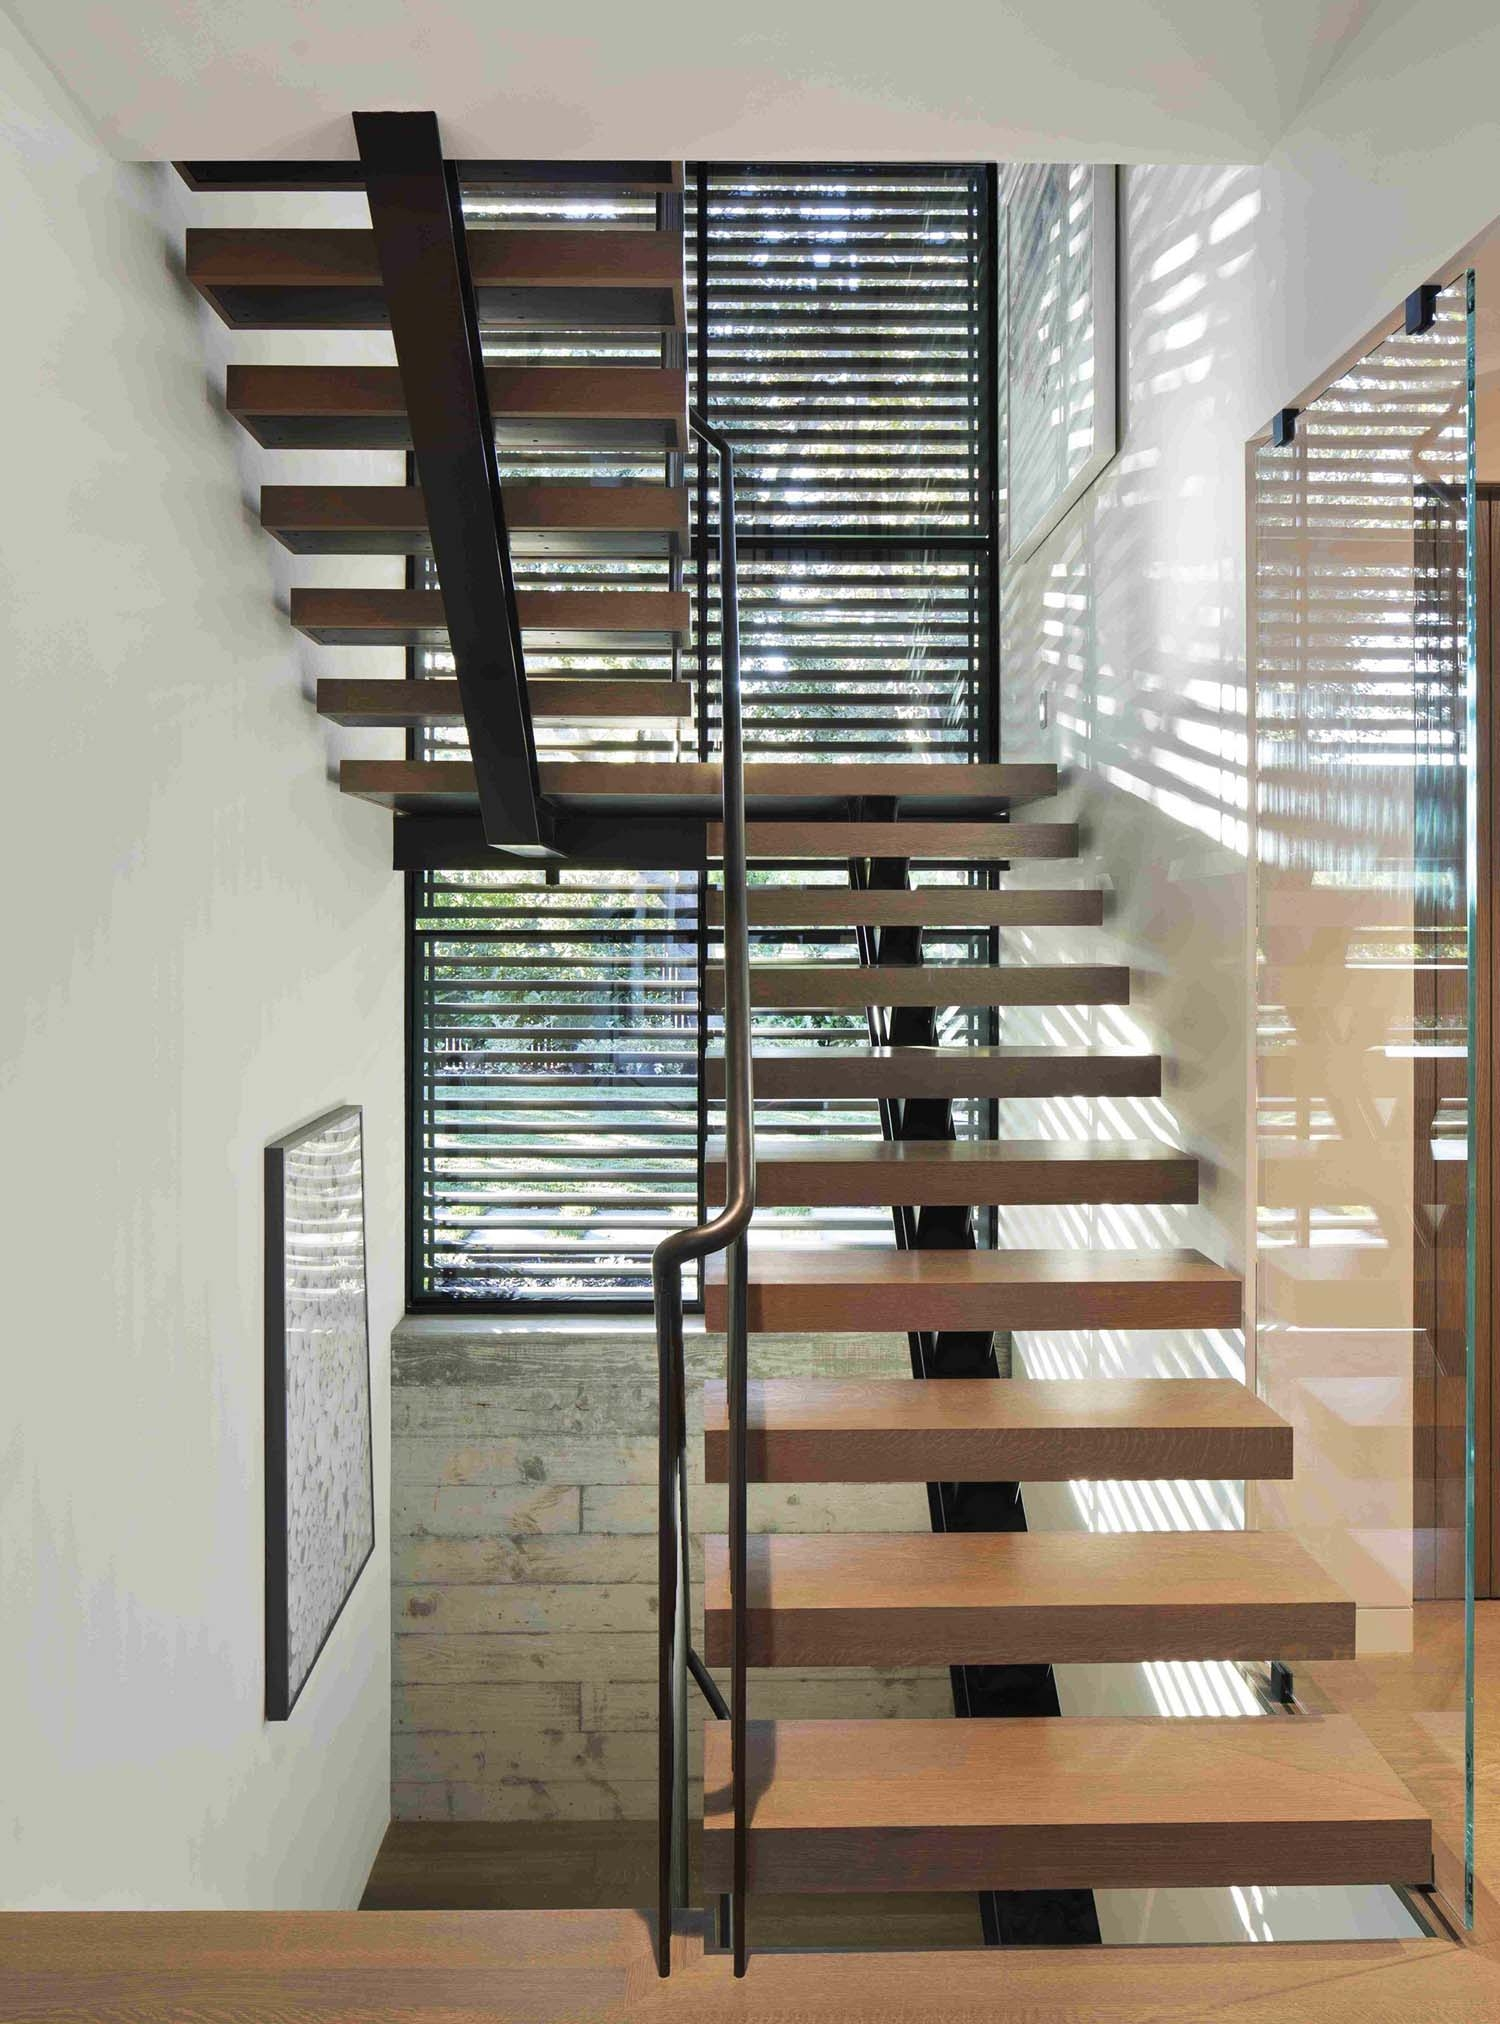 Modern Staircase Design Contemporary Stair Design Ideas | Staircase Design Steel And Wood | Angle Bar Stair | U Shaped Stair | Simple | Wooden Step | Open